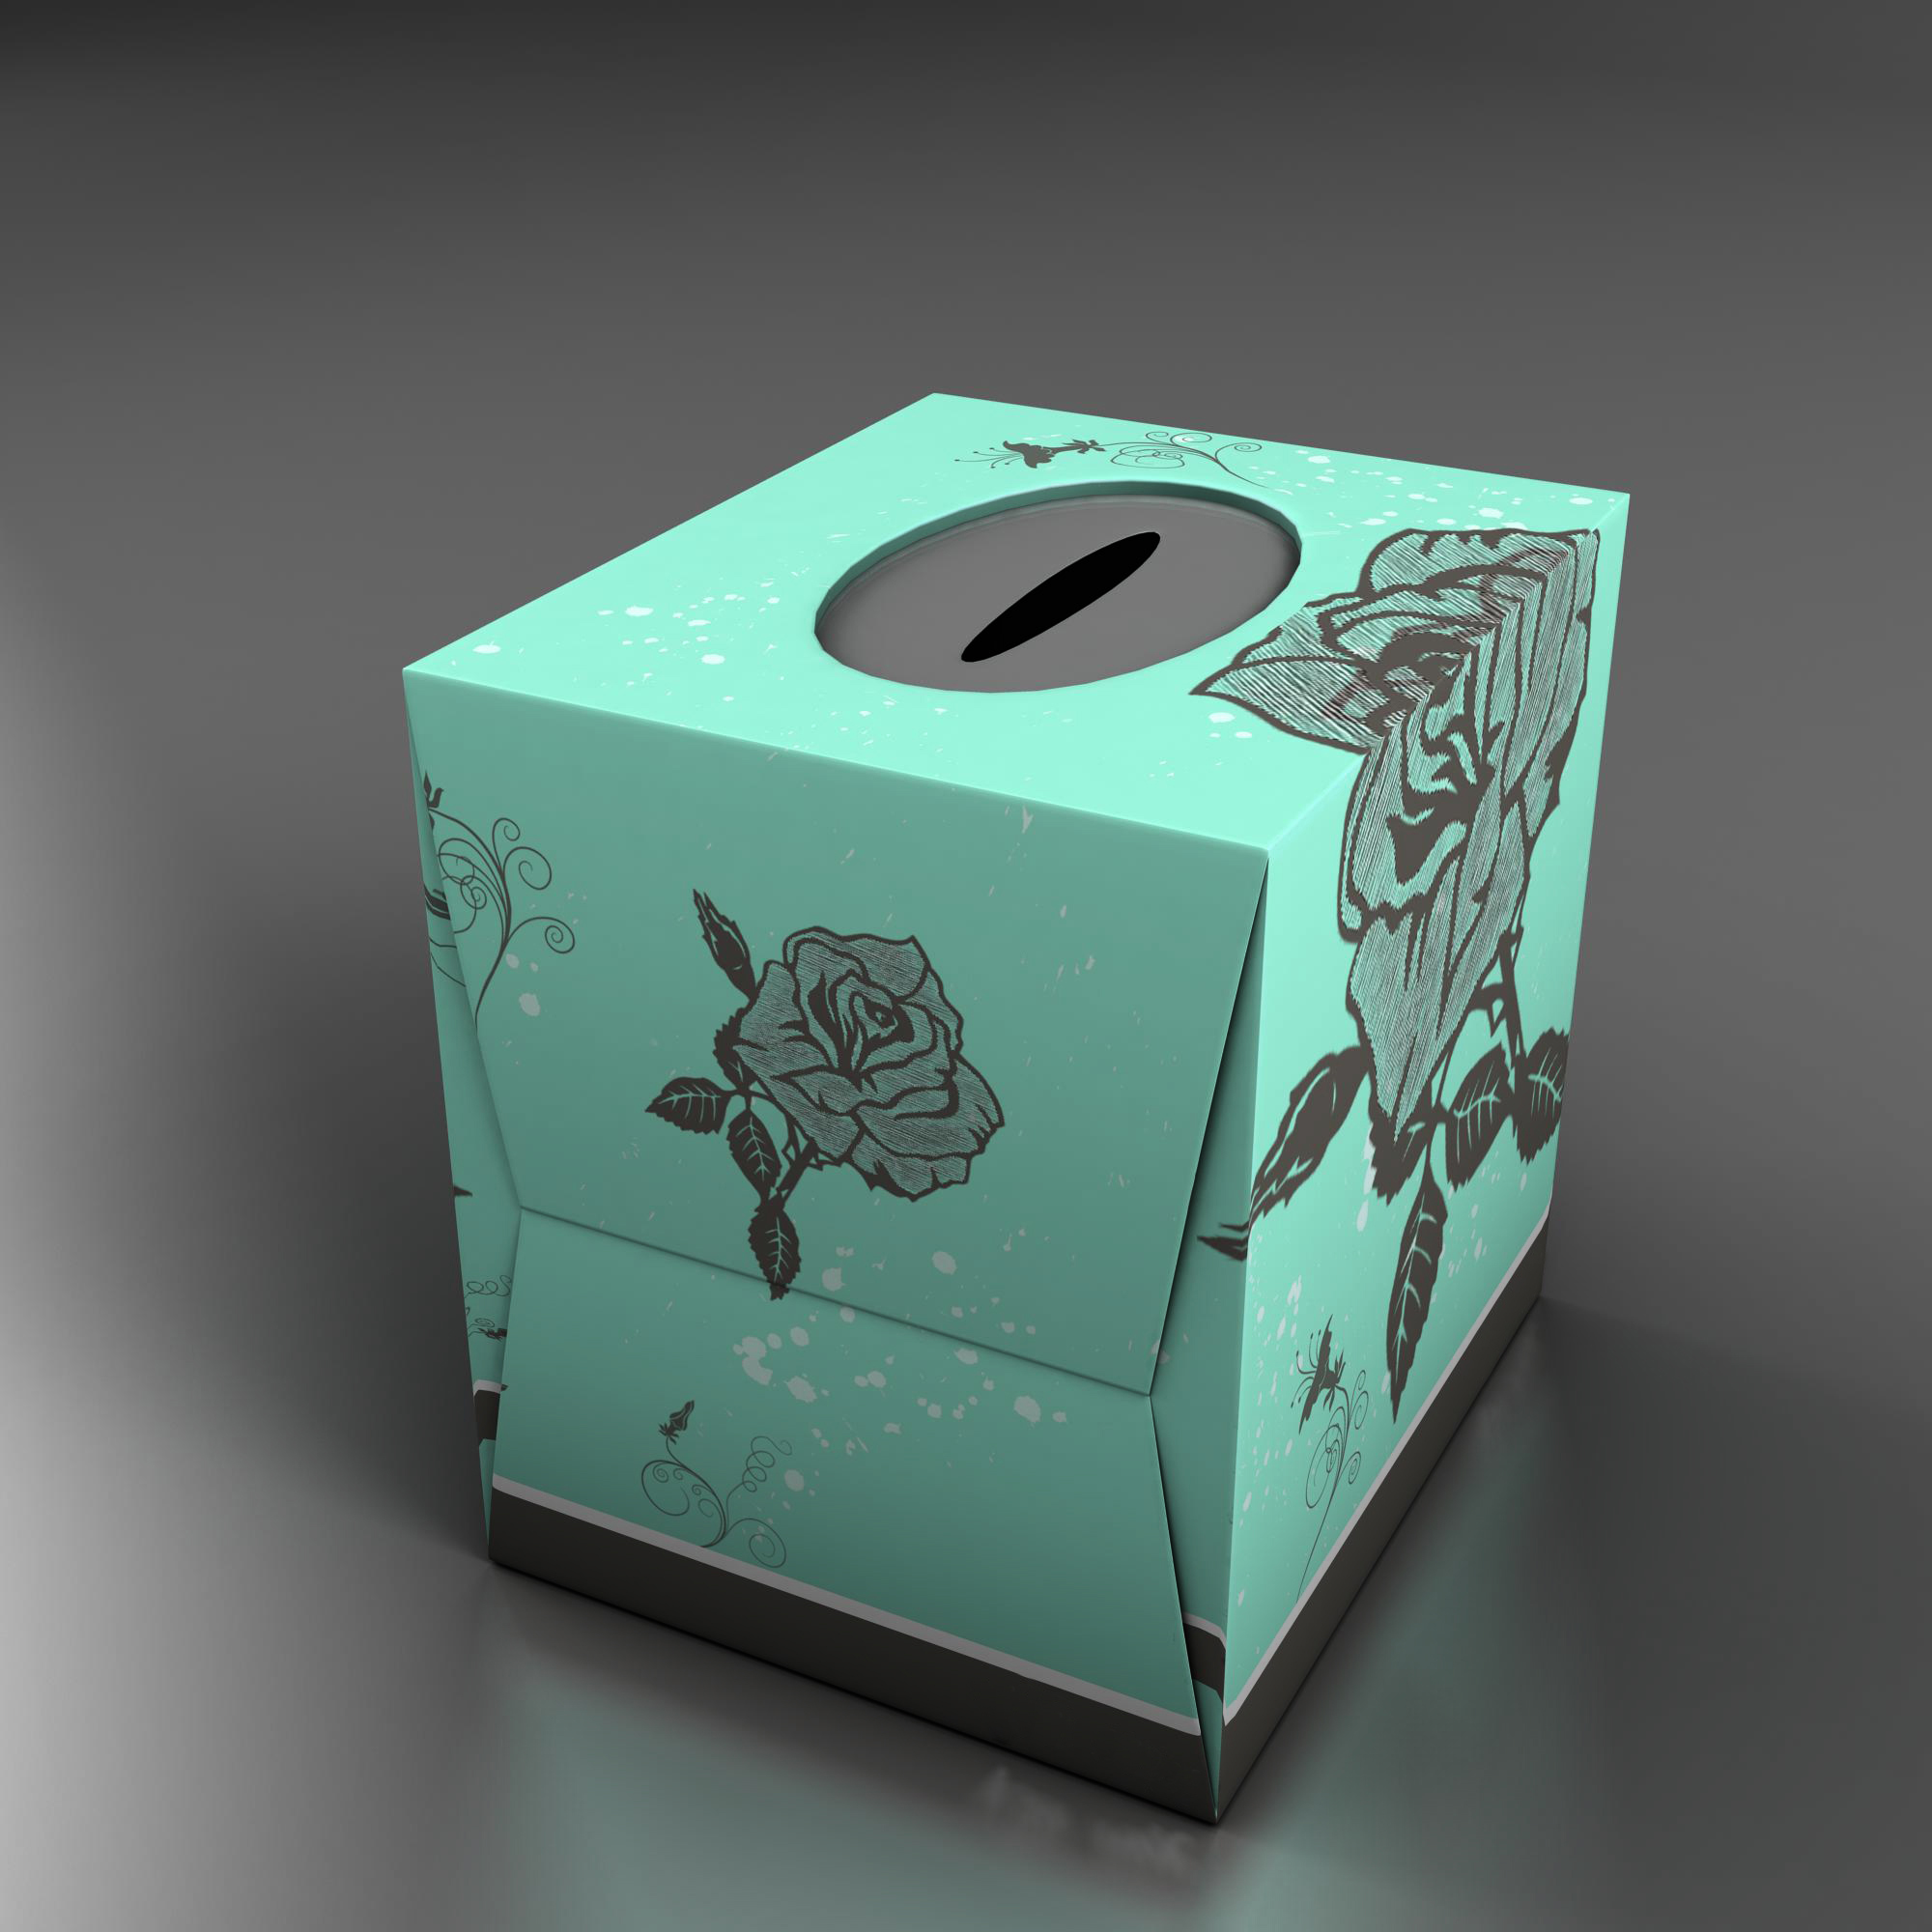 teal tissue box na may rosas 3d modelo 3ds max fbx ma mb obj 157245